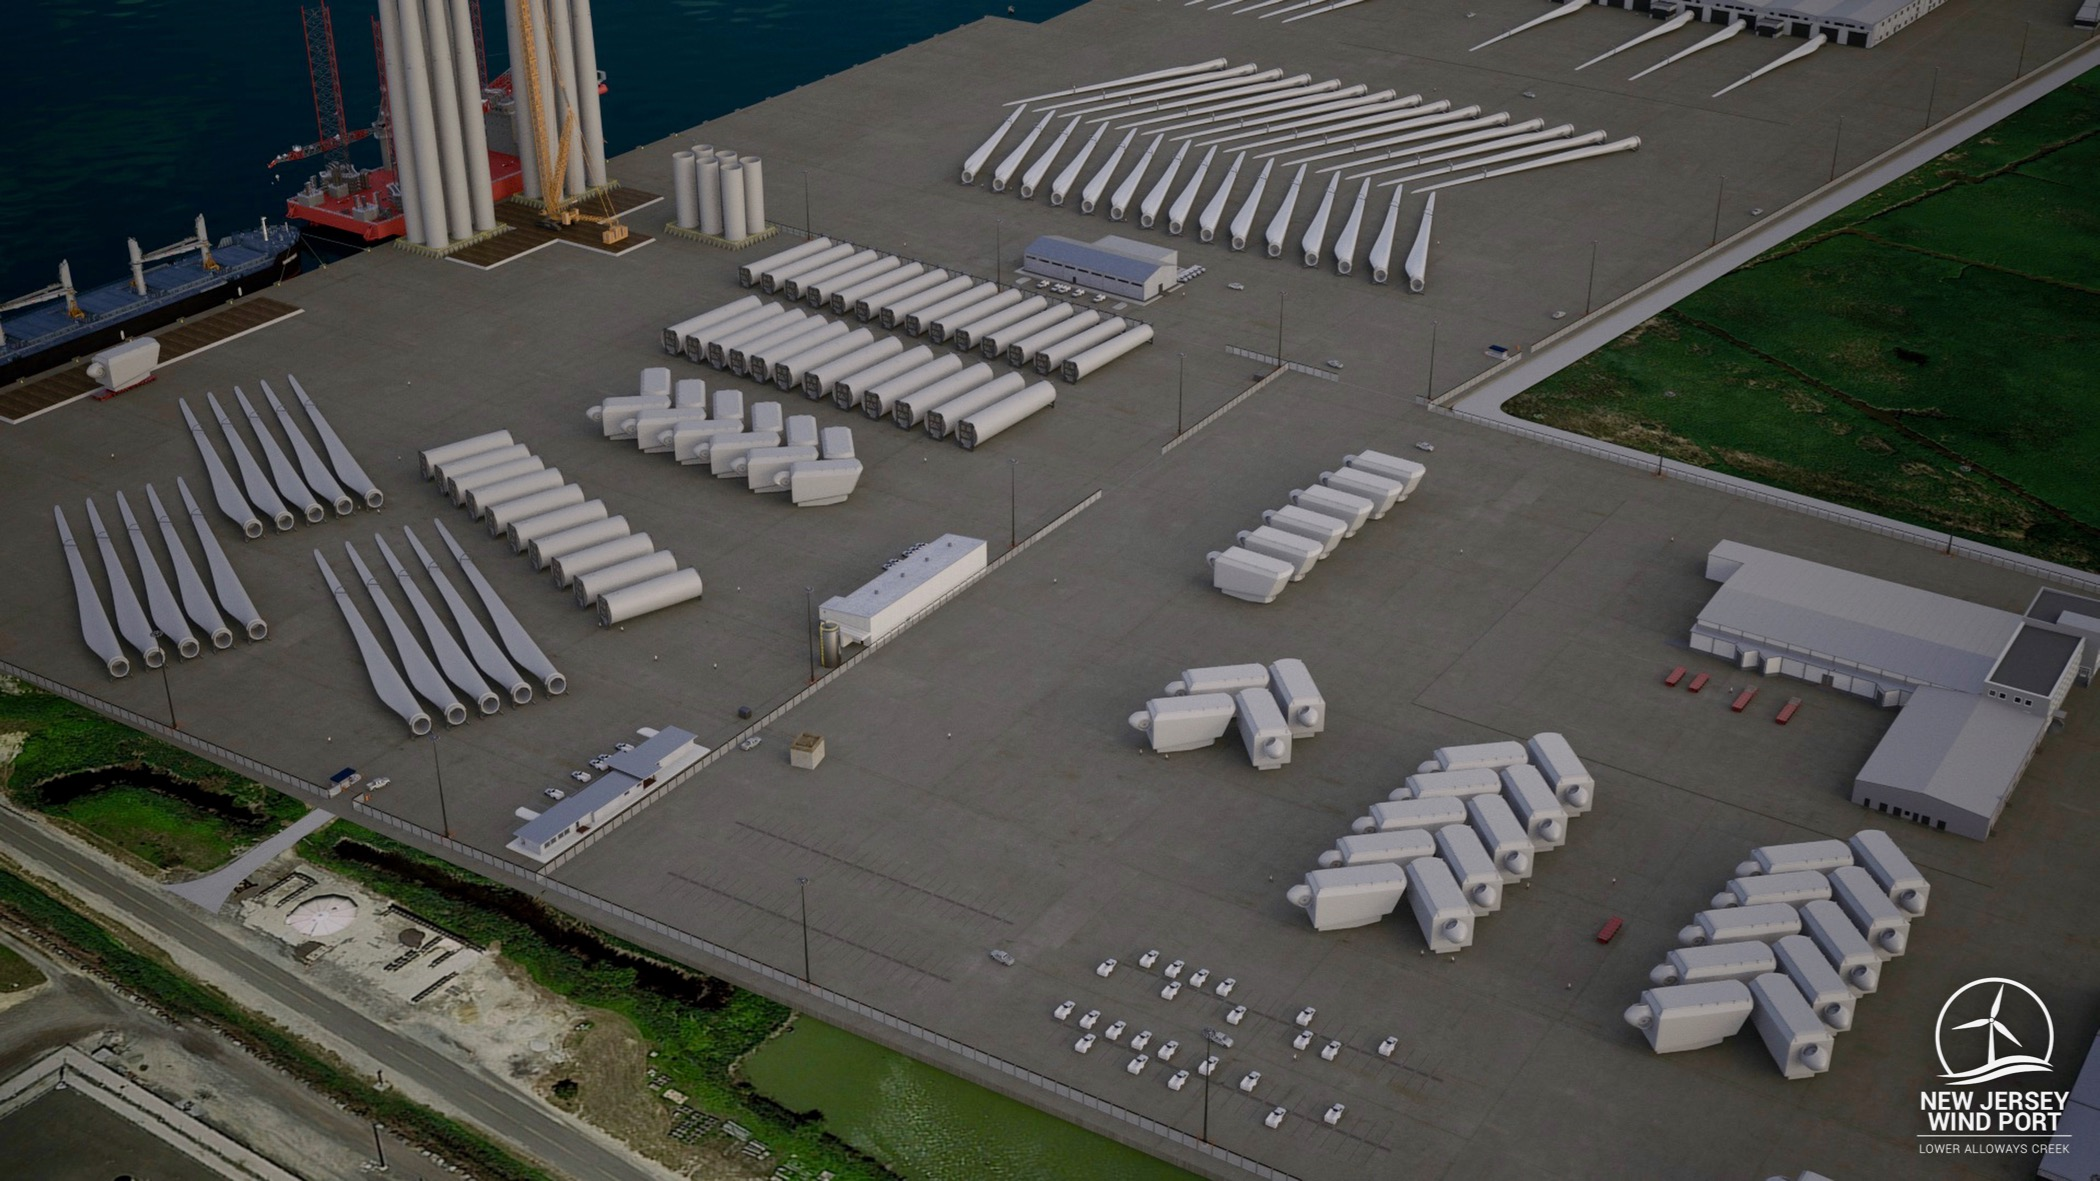 A rendering shows offshore wind turbine components being manufactured, assembled, and staged for shipping to their final destination in the ocean. Blades are more than 350 feet in length, more than the length of a football field.